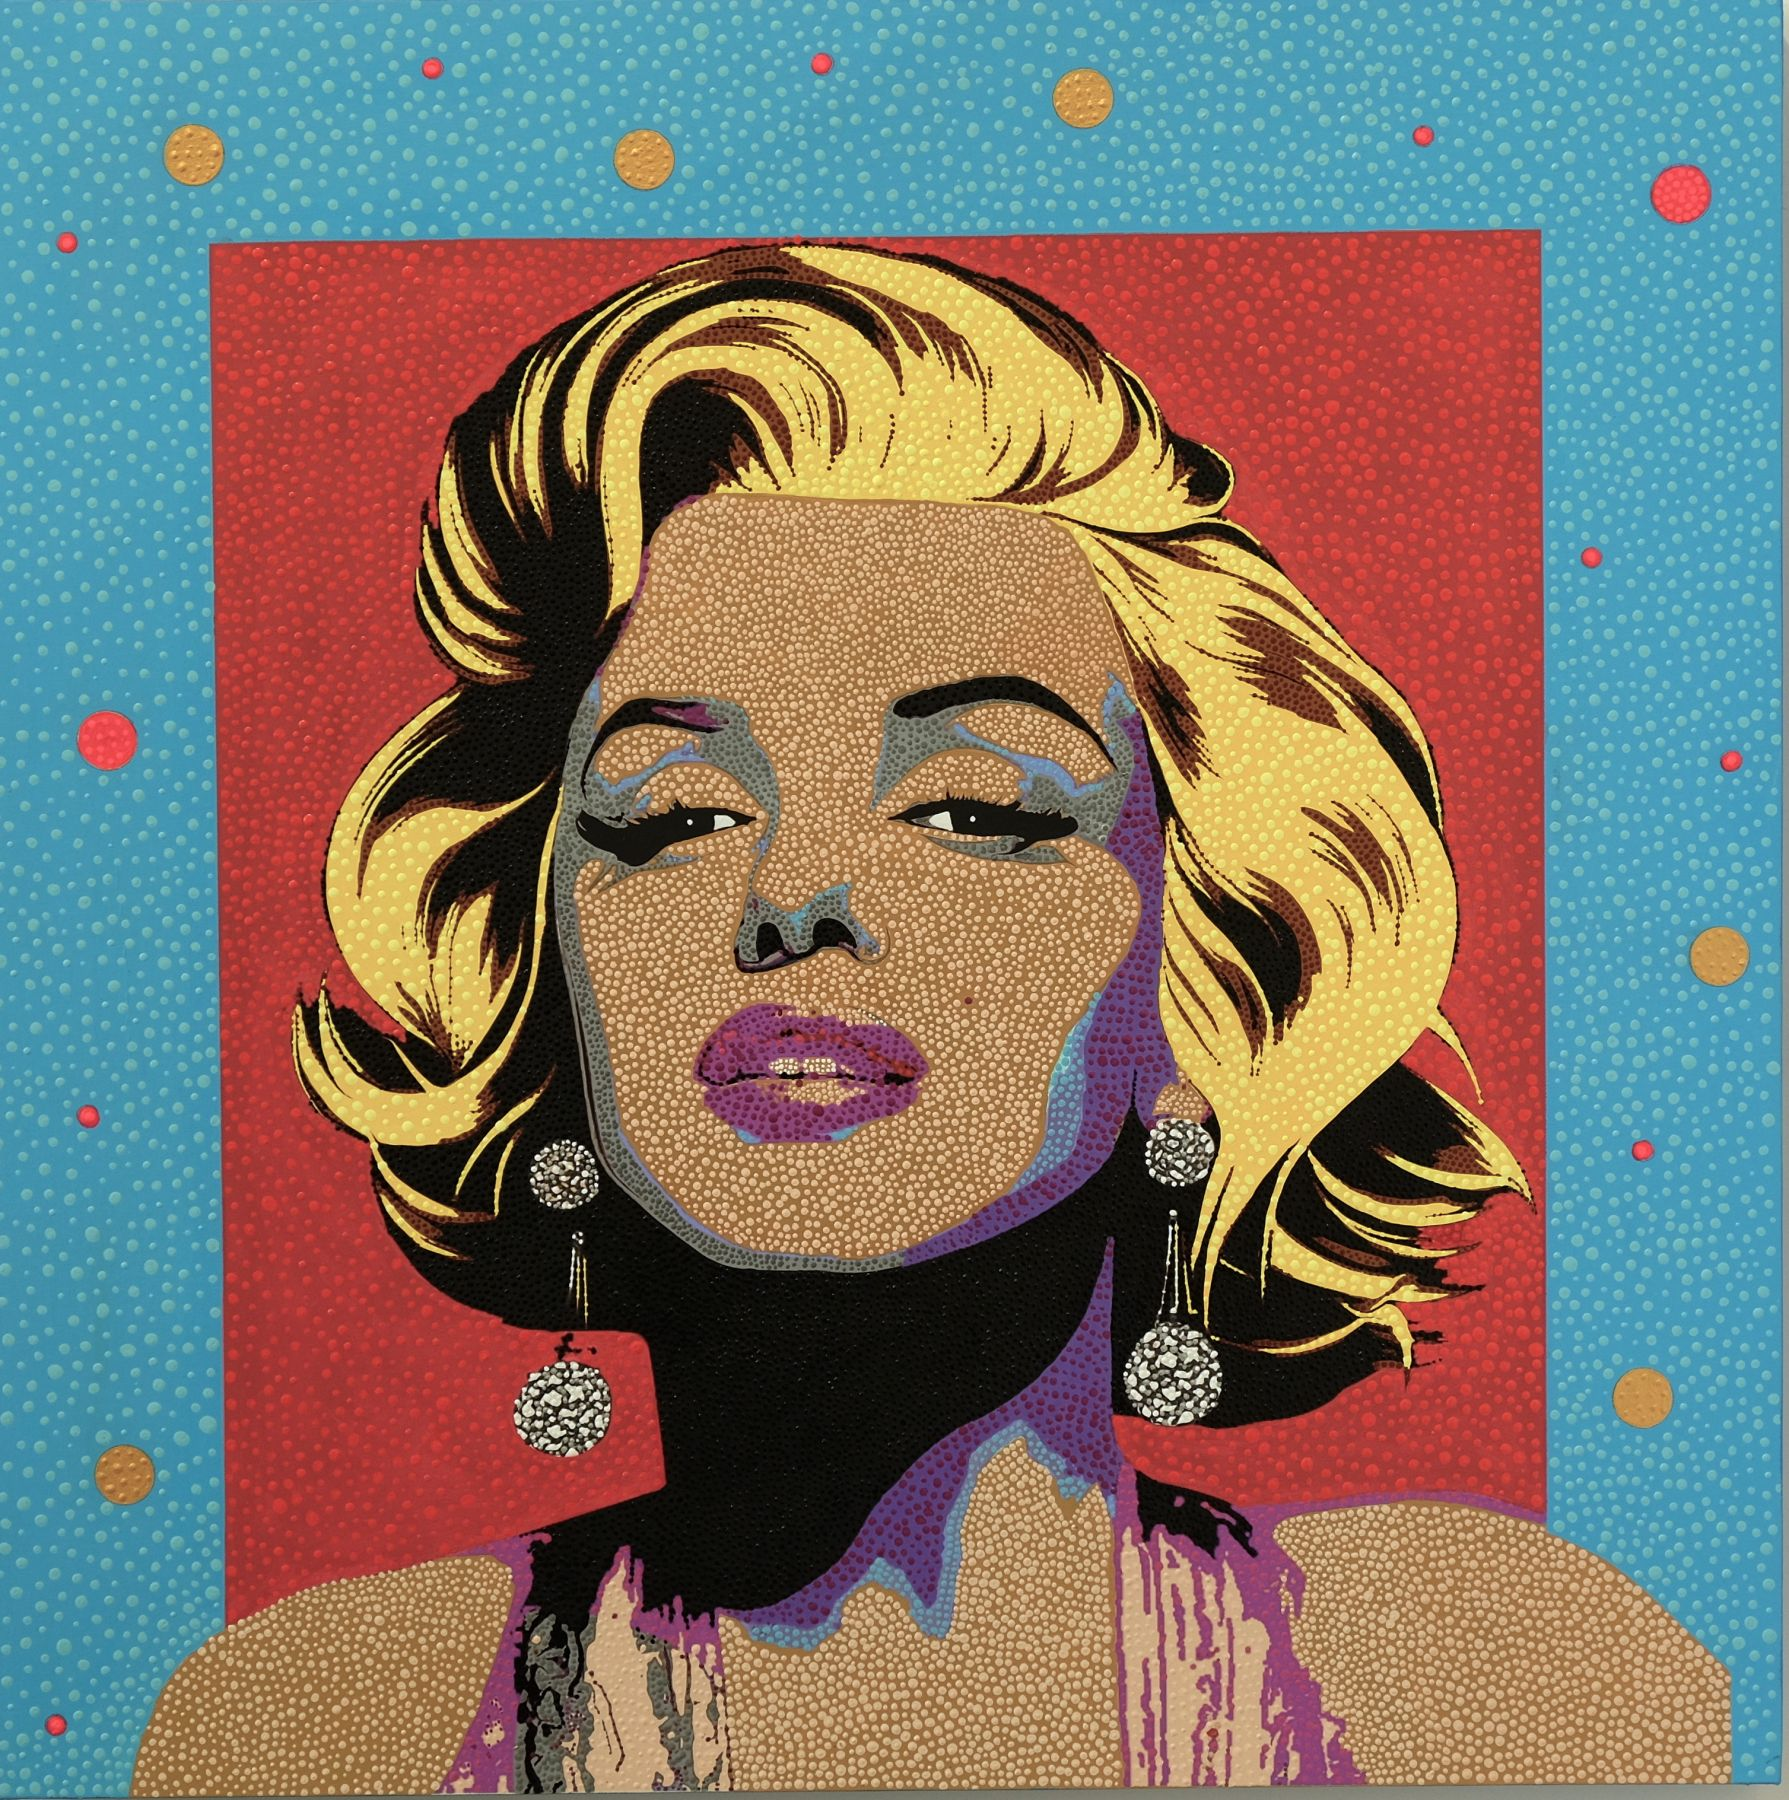 Marilyn Monroe from Dot Pop by Philip Tsiaras at Hg Contemporary founded by Philippe Hoerle Guggenheim